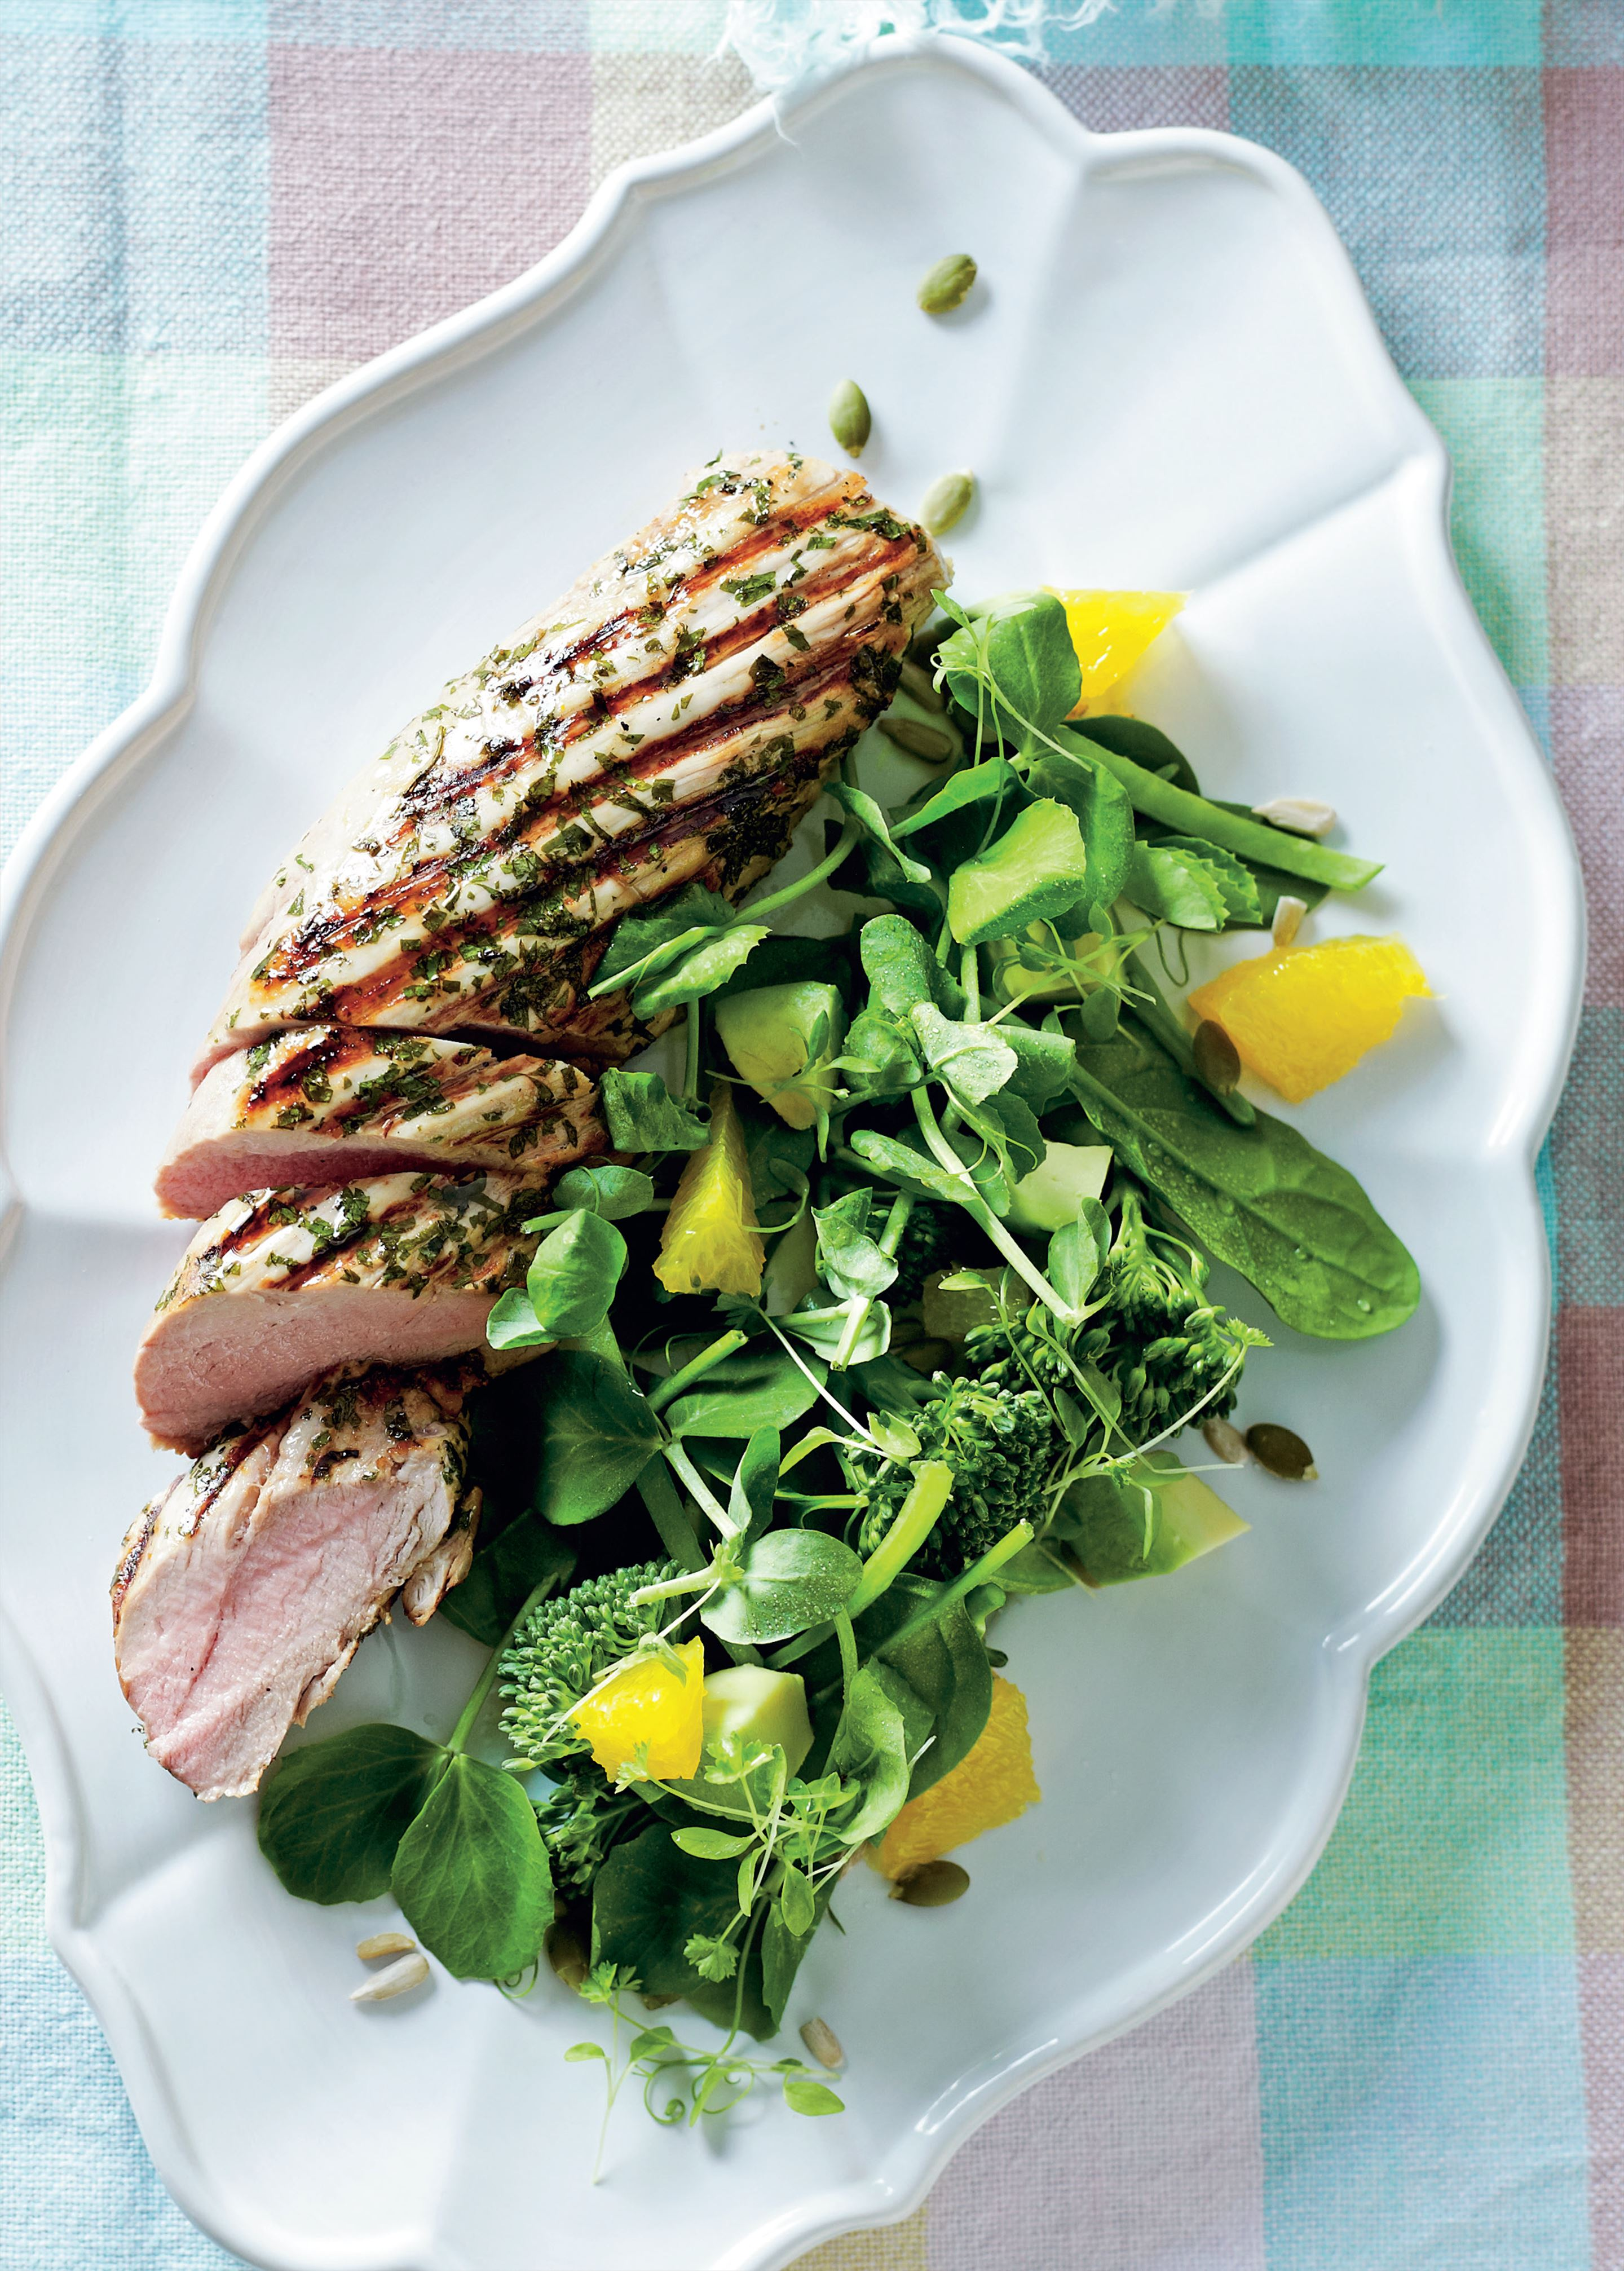 Spiced orange pork tenderloin with wellbeing power salad